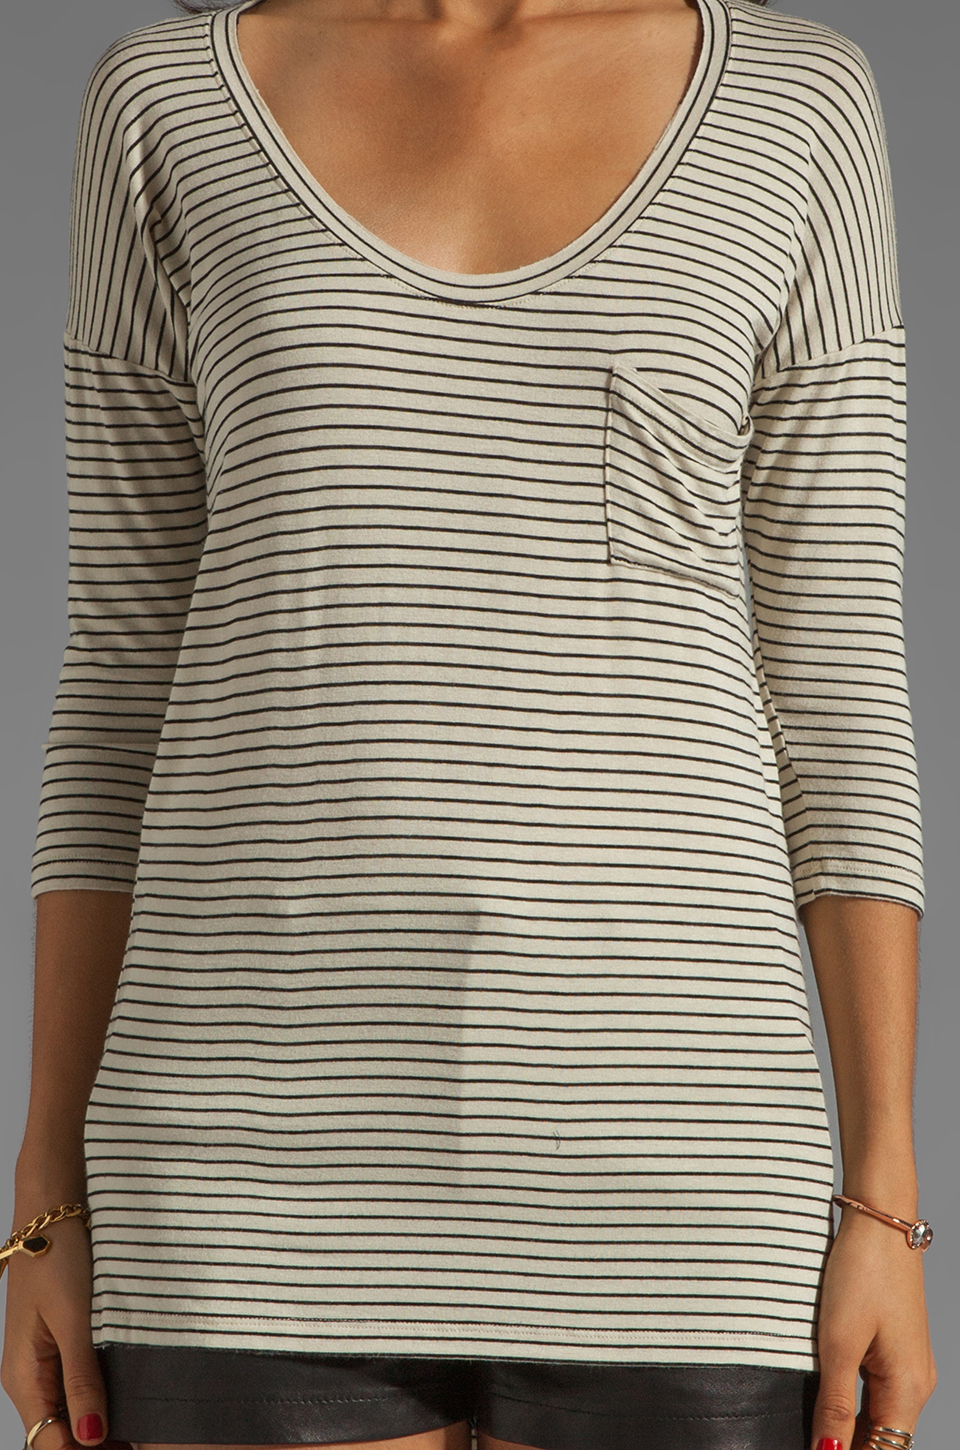 Free People Retro Stripe Tee in Natural